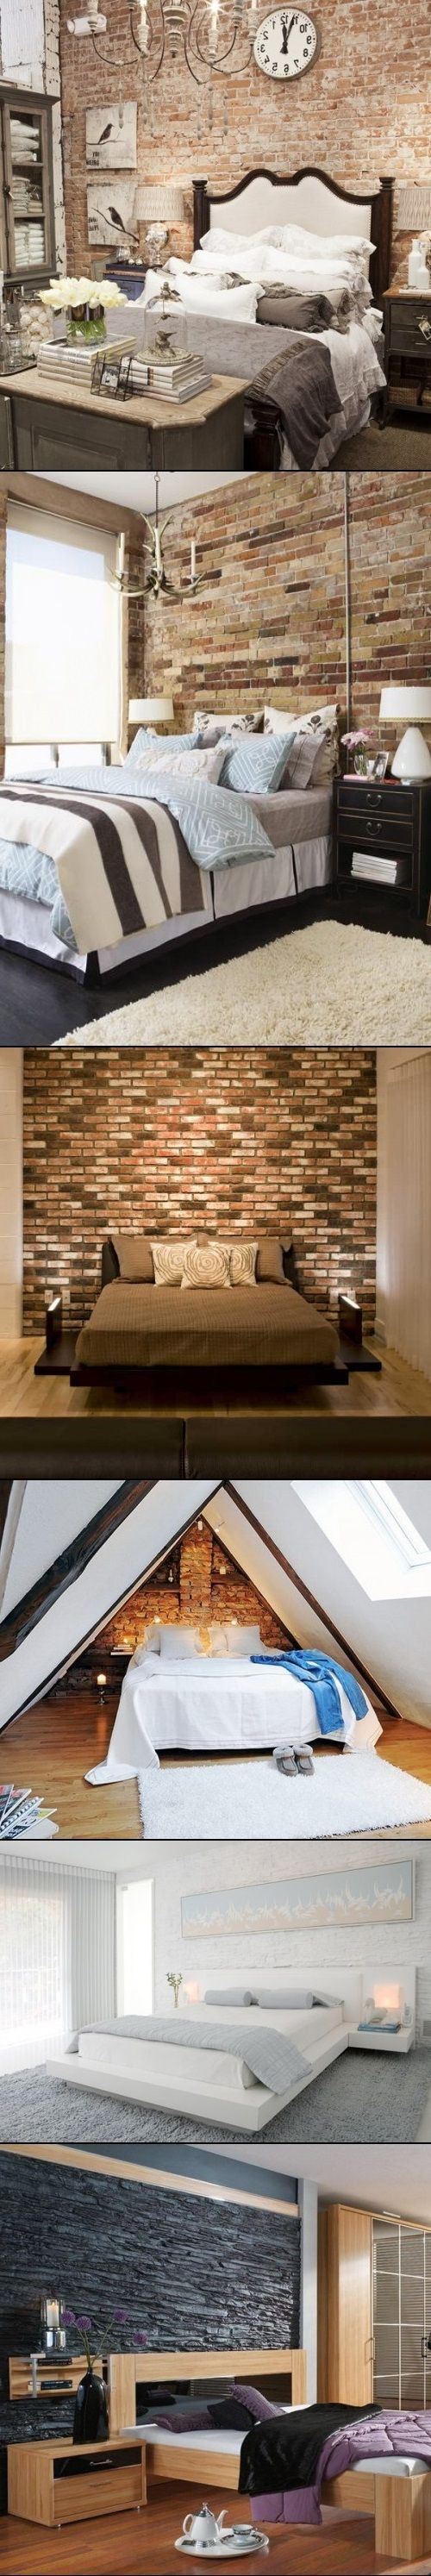 diy ideas to decorate a brick wall behind your bed brick wallpaper bedroombrick - Brick Wallpaper Bedroom Ideas